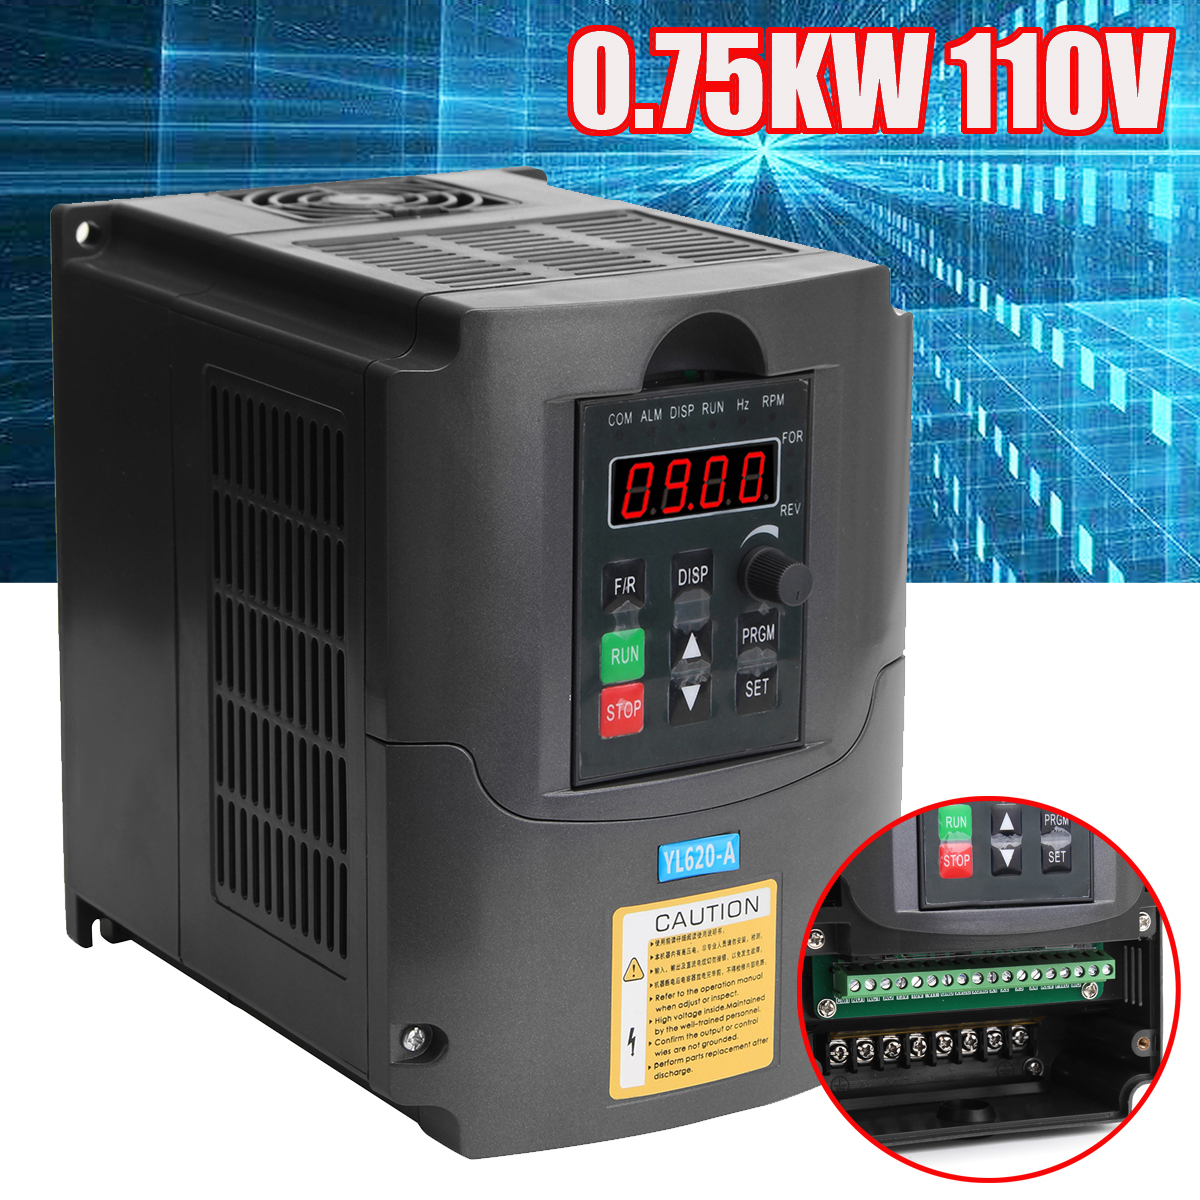 0.75KW 110V AC Variable Frequency Inverter Converter 3 Phase Output Built-in PLC Single Phase Space Voltage Vector Modulation 110v 2 2kw ac variable frequency inverter converter 3 phase output single phase input space voltage vector modulation